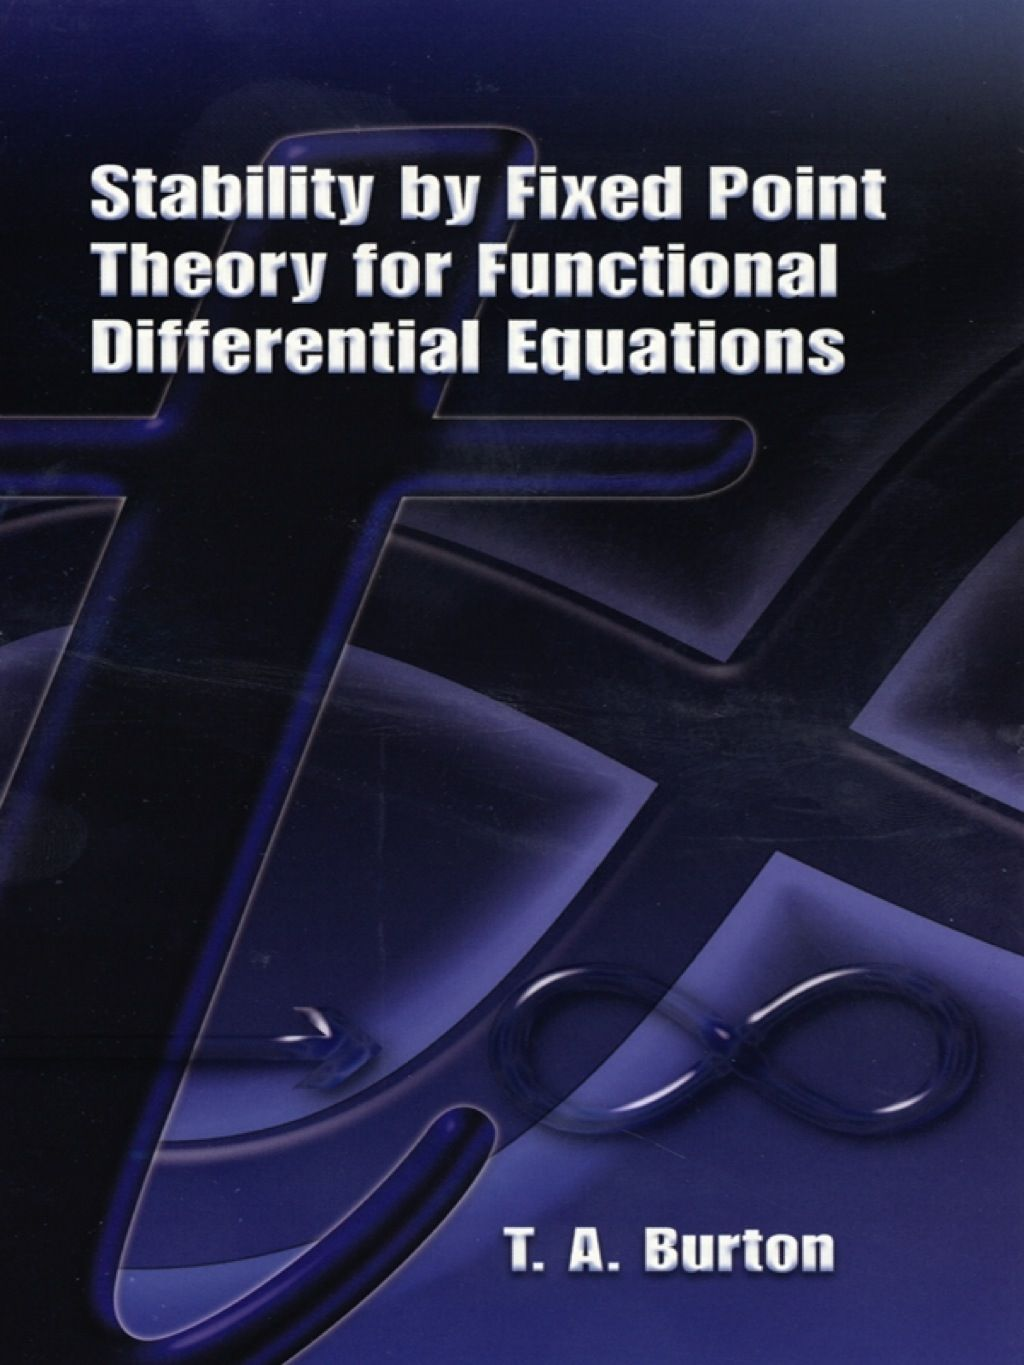 Stability by Fixed Point Theory for Functional Dif